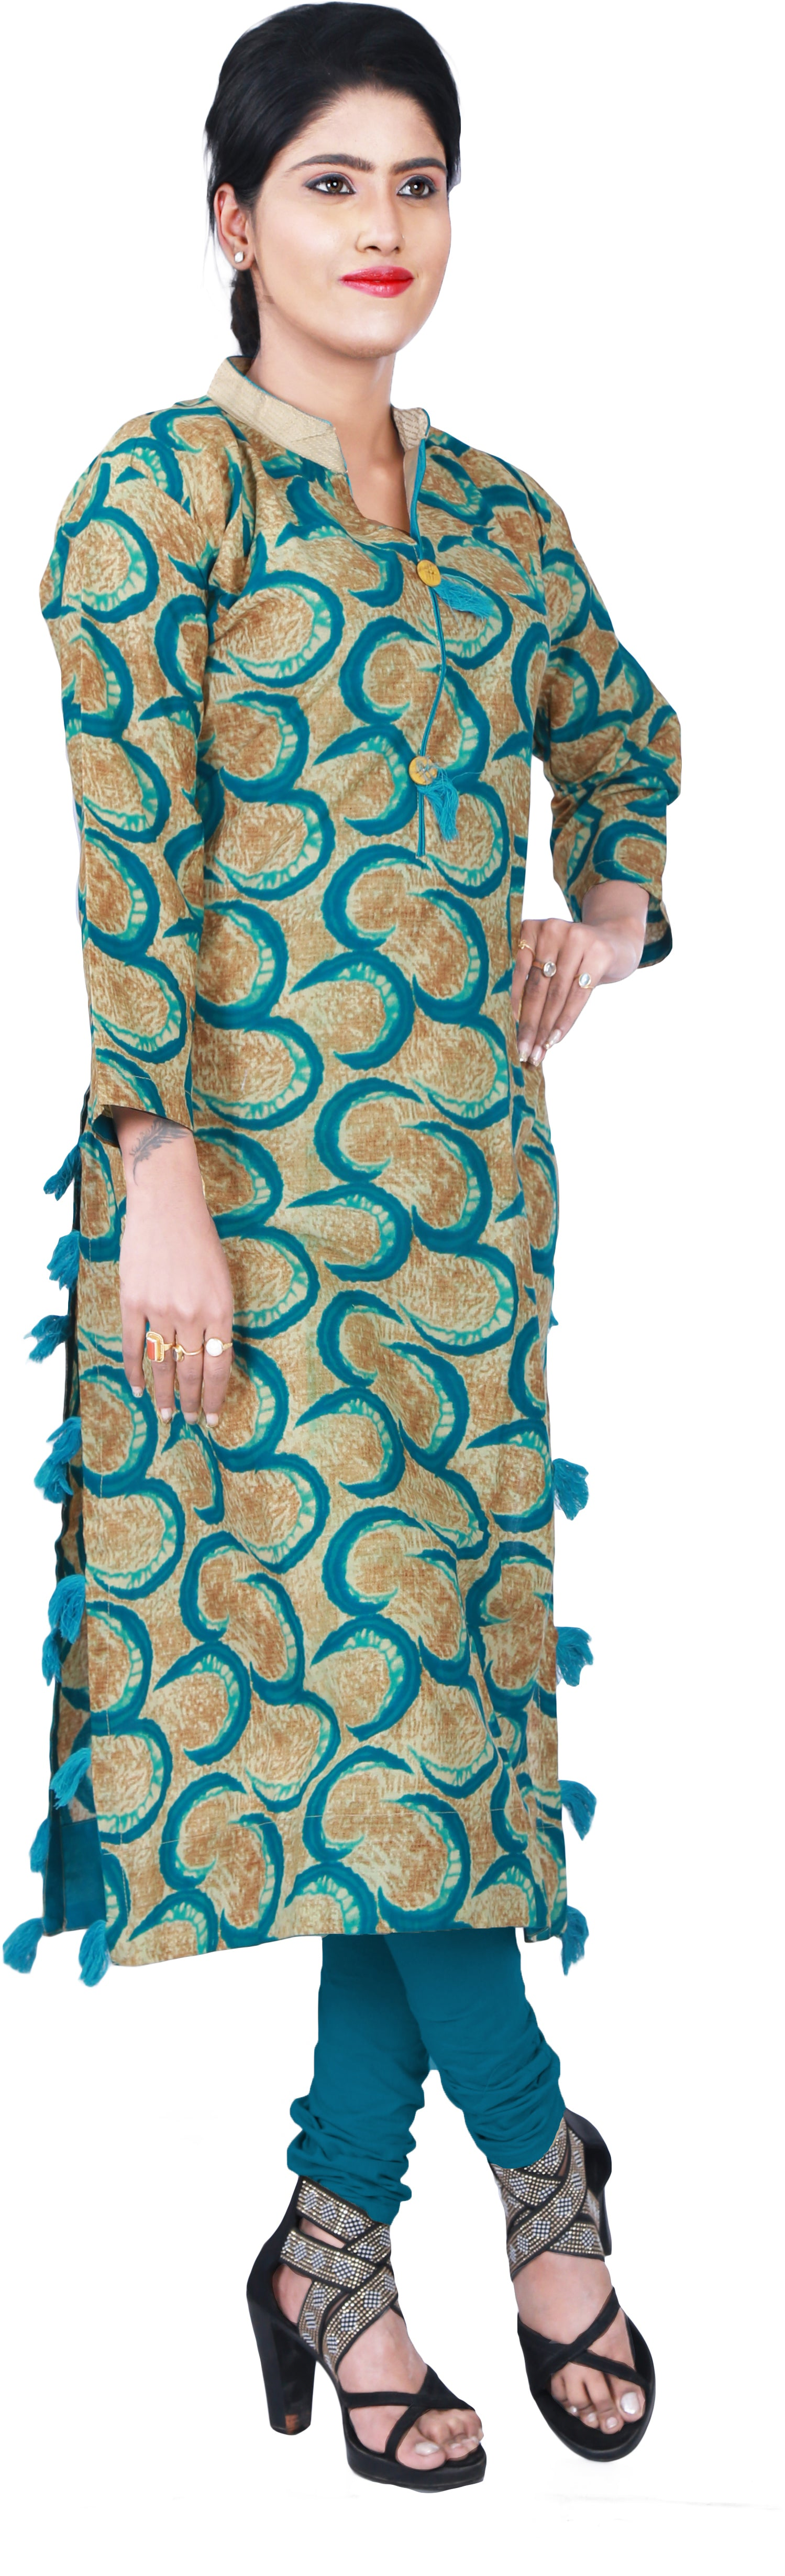 SMSAREE Brown & Turquoise Designer Casual Partywear Pure Cotton Printed Thread Hand Embroidery Work Stylish Women Kurti Kurta With Free Matching Leggings D343